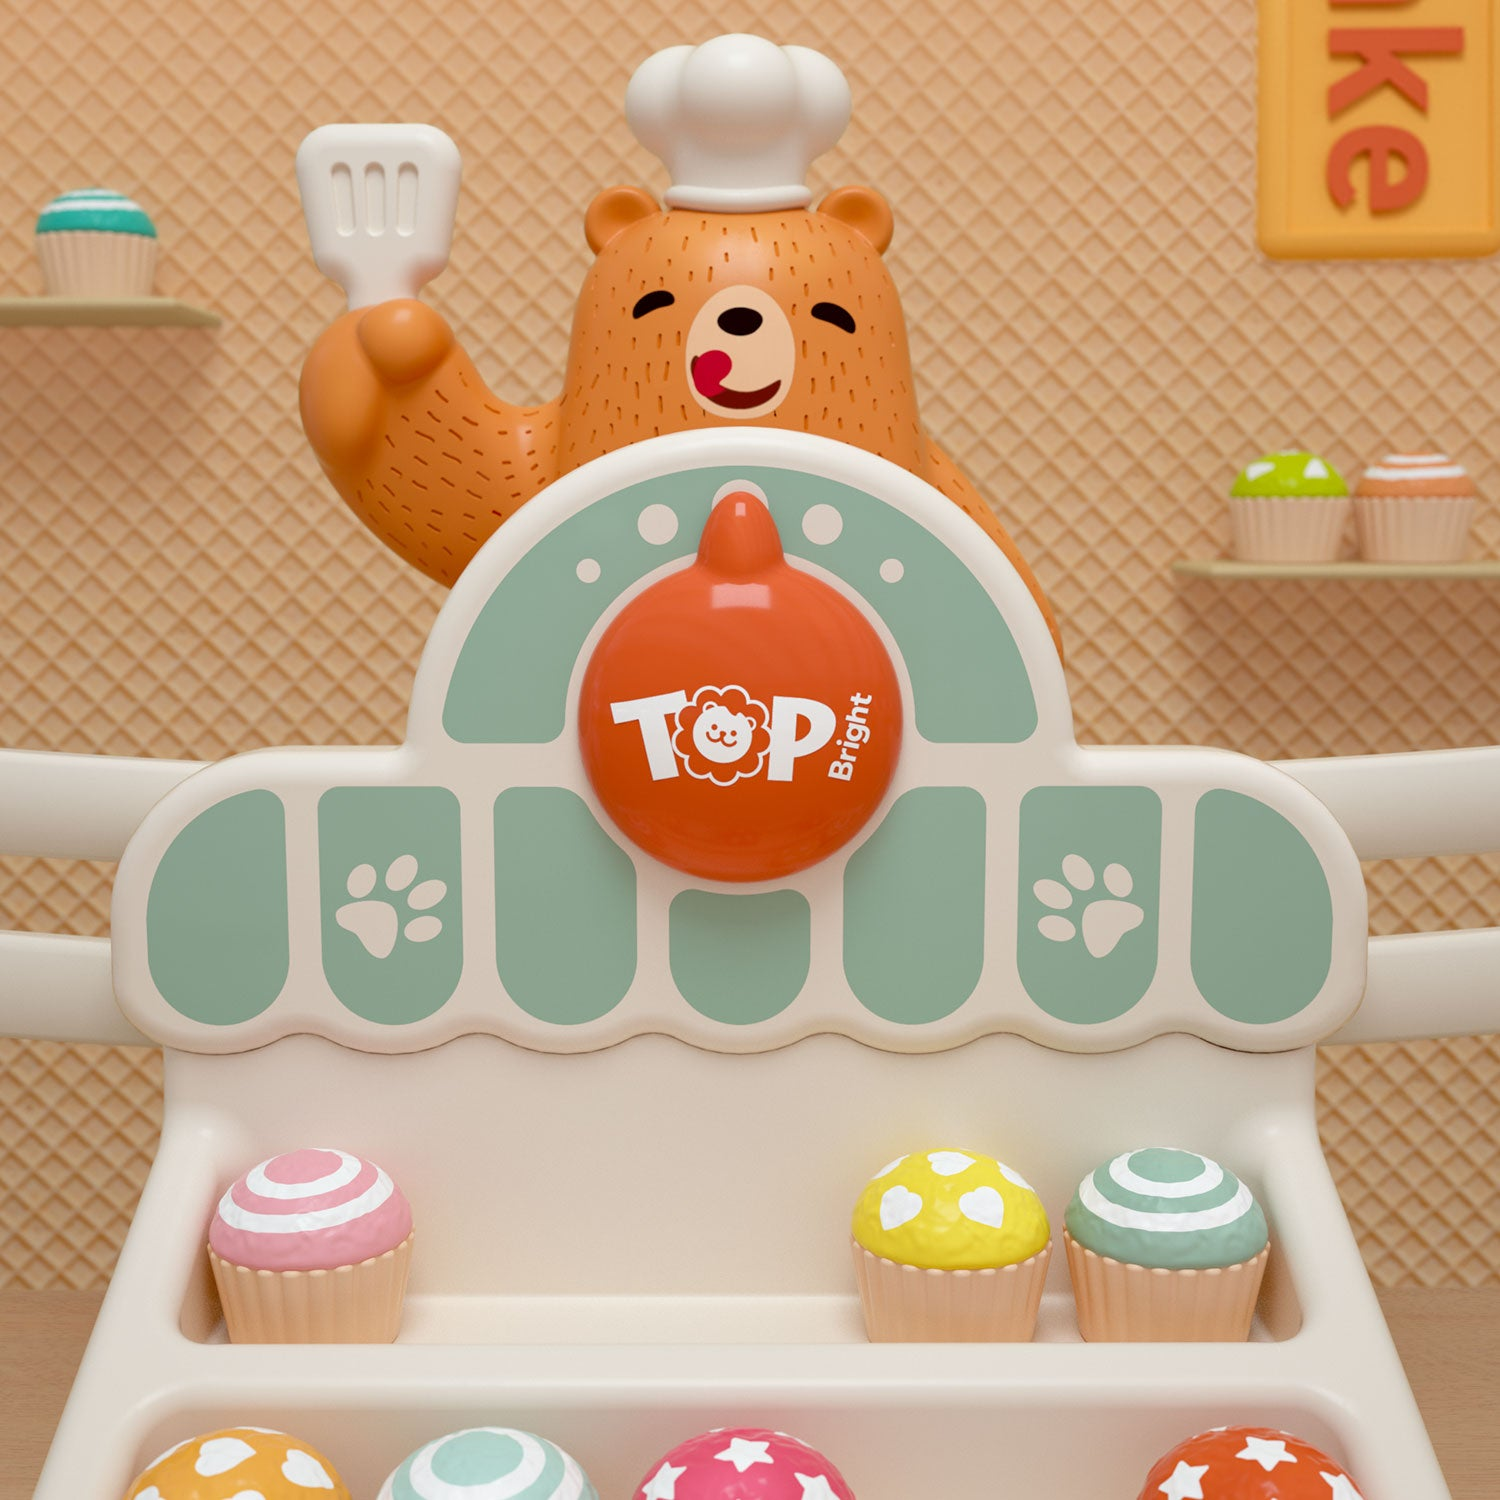 Yummy Bear 123 Scale - Teach Your Kids To Use A Scale! - 指针偏转